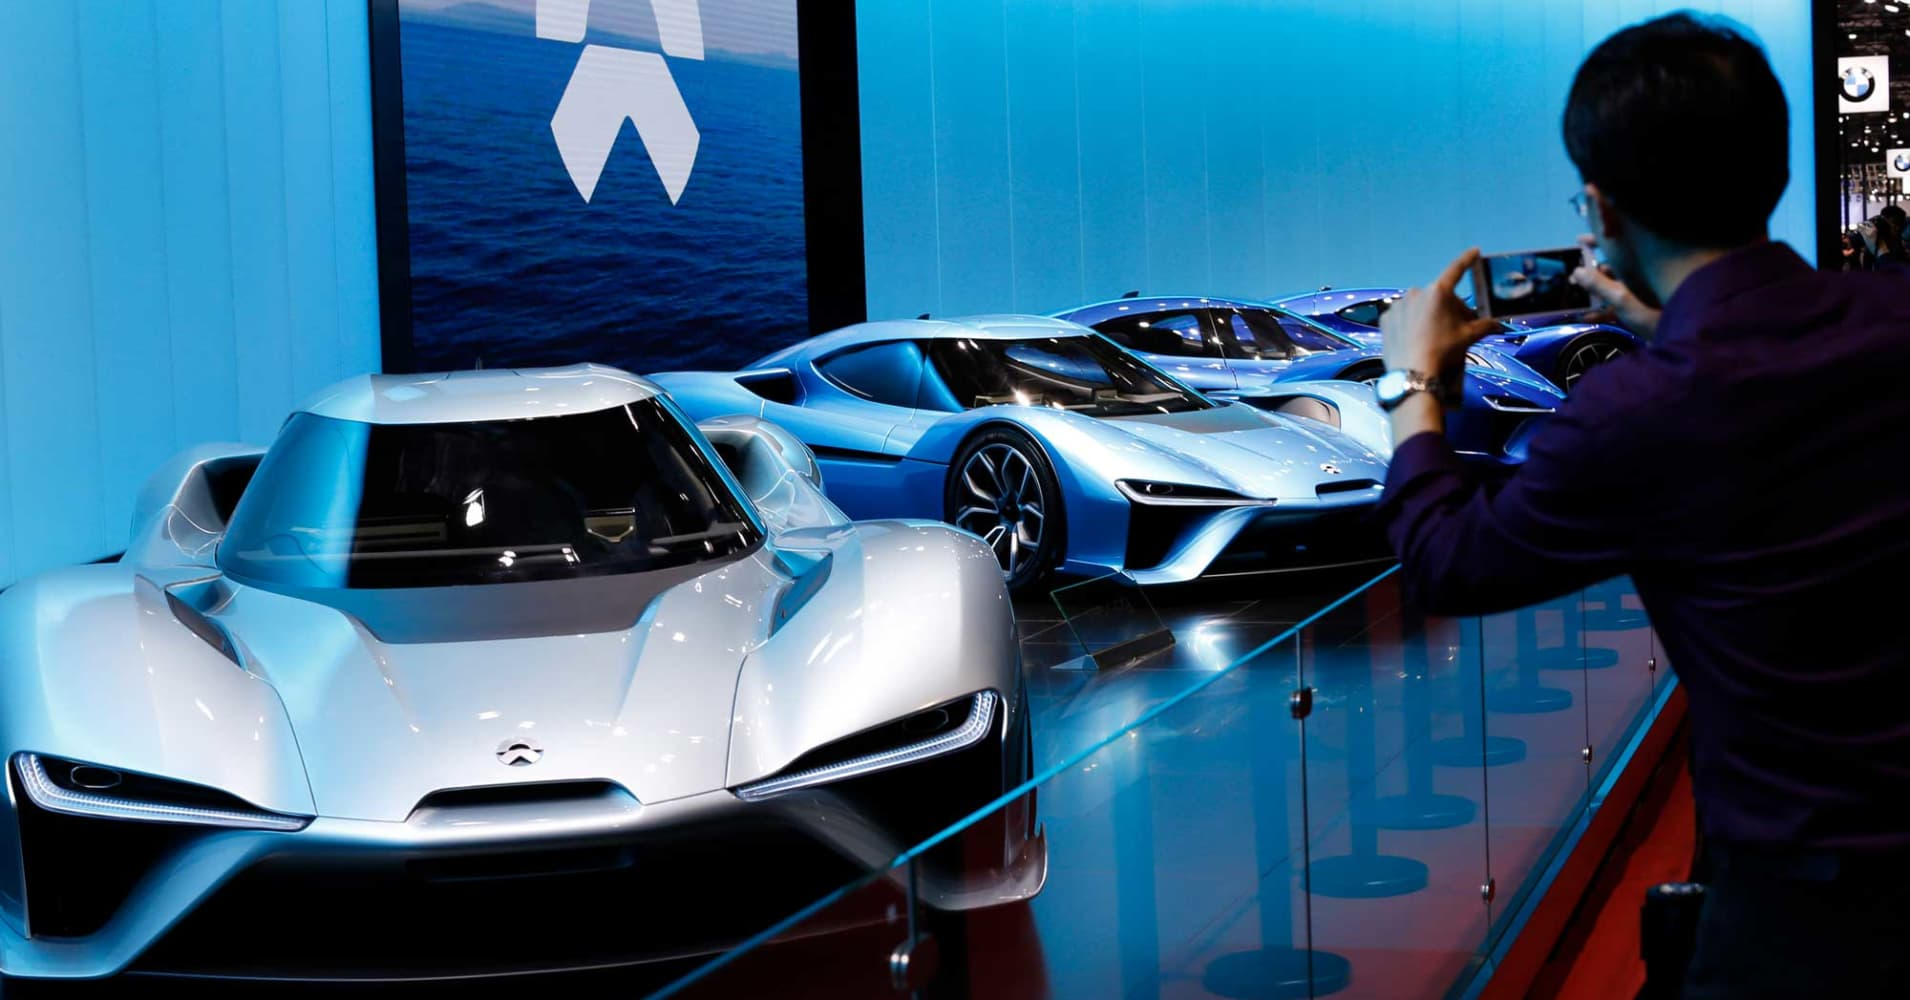 Nio, China rival to Tesla, says its US head to step down